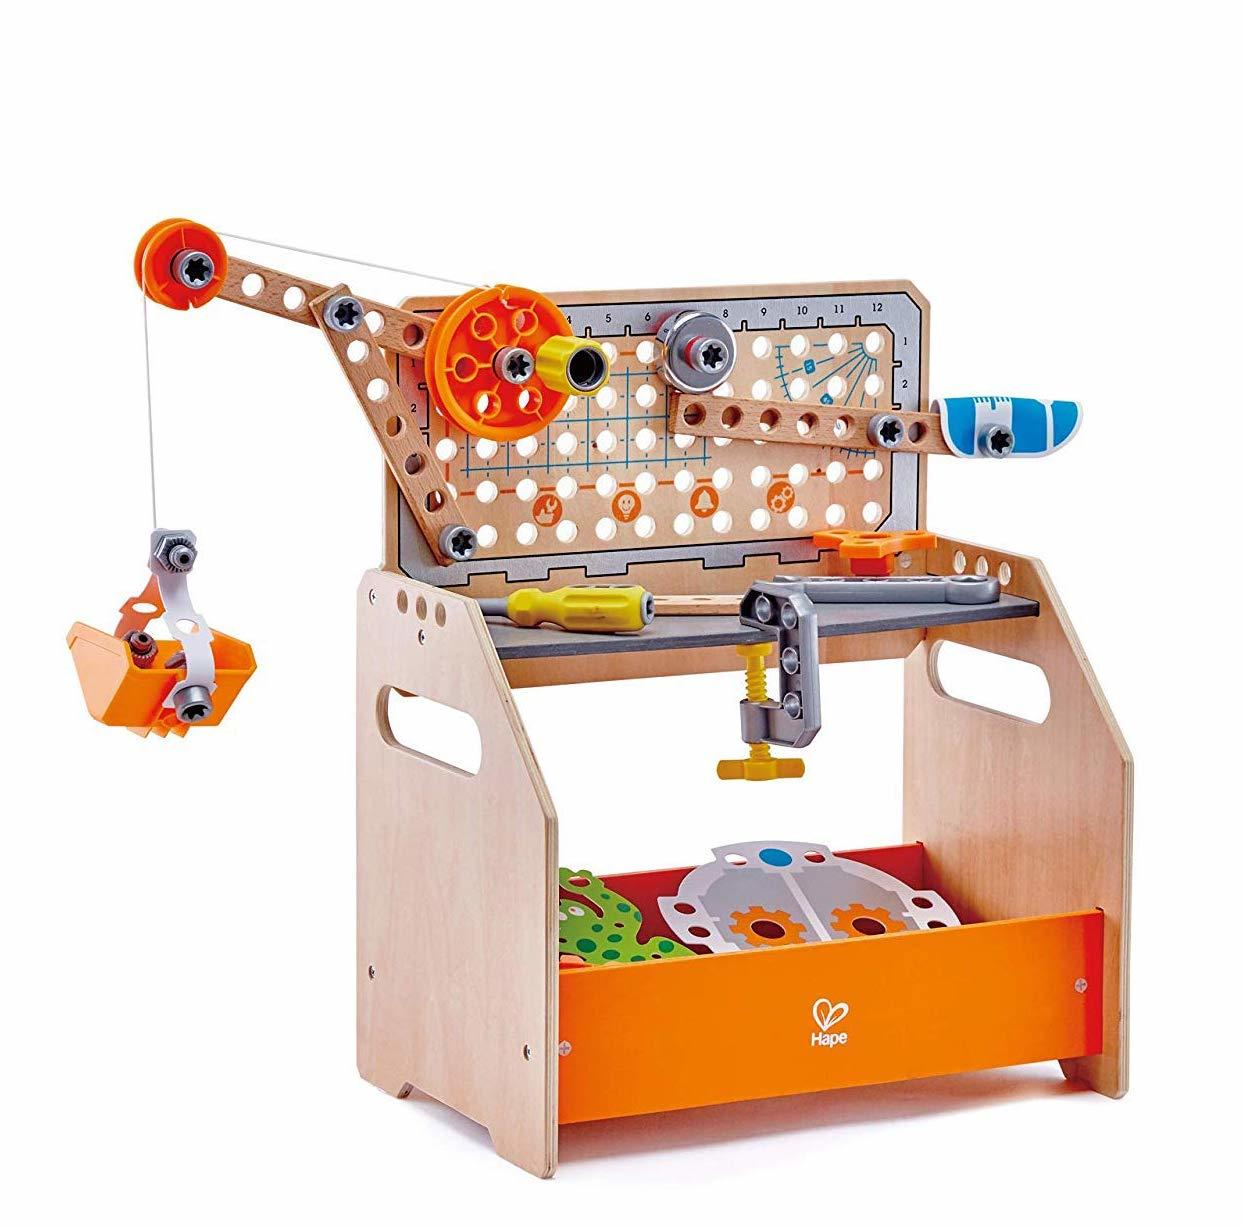 Hape Scientific Work Bench and tools to build and learn. Includes instructions for over 10 creations. Age 4+